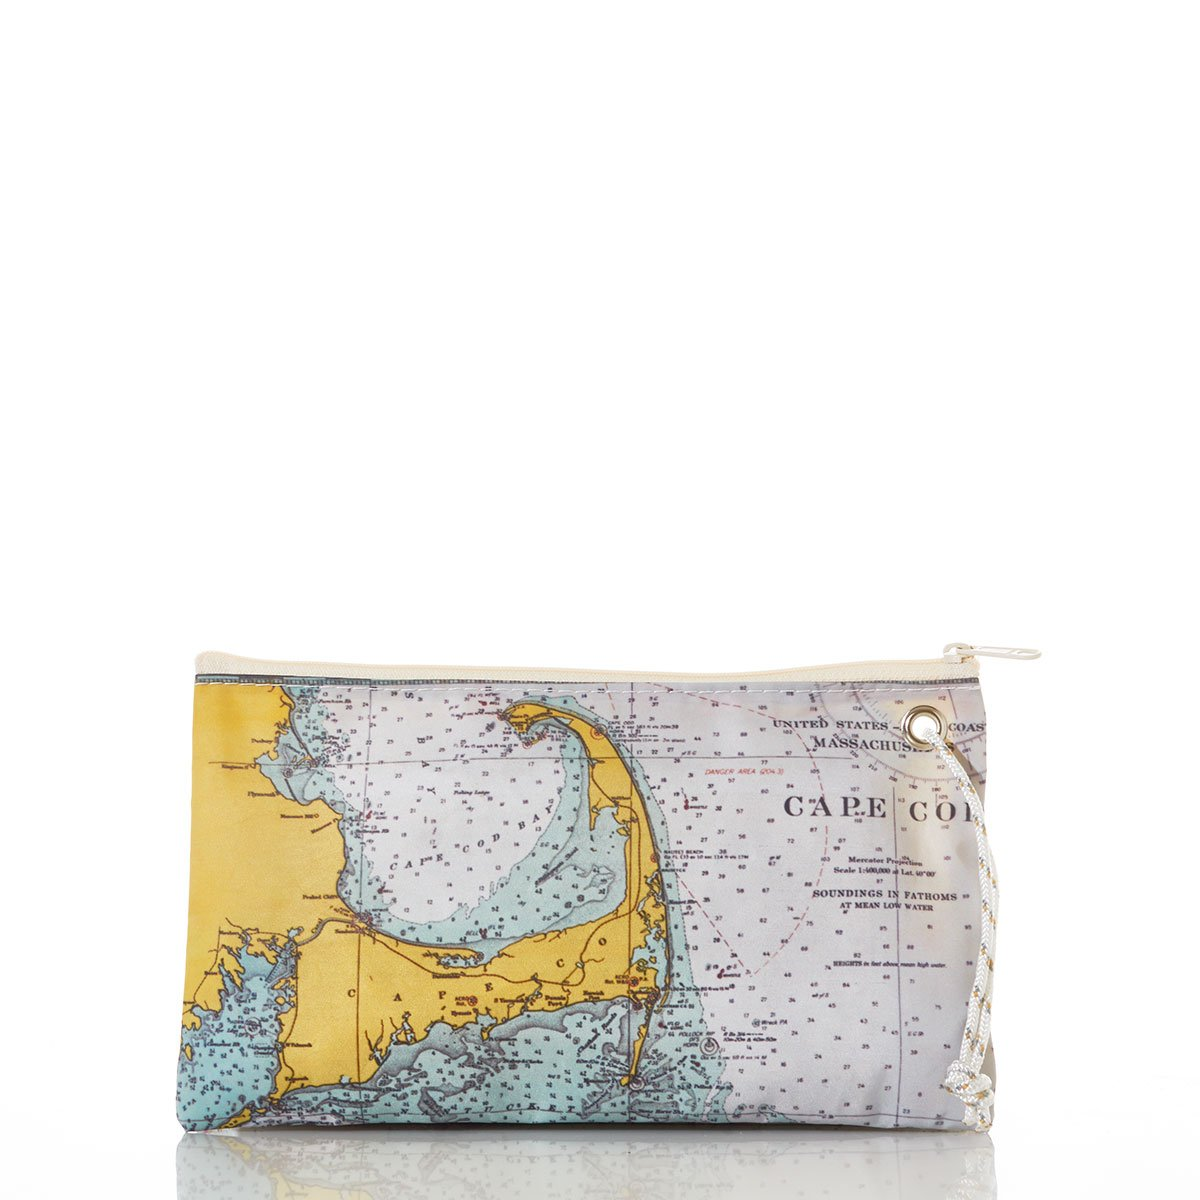 Sea Bags Recycled Sail Cloth Cape Cod Nautical Chart Wristlet Large